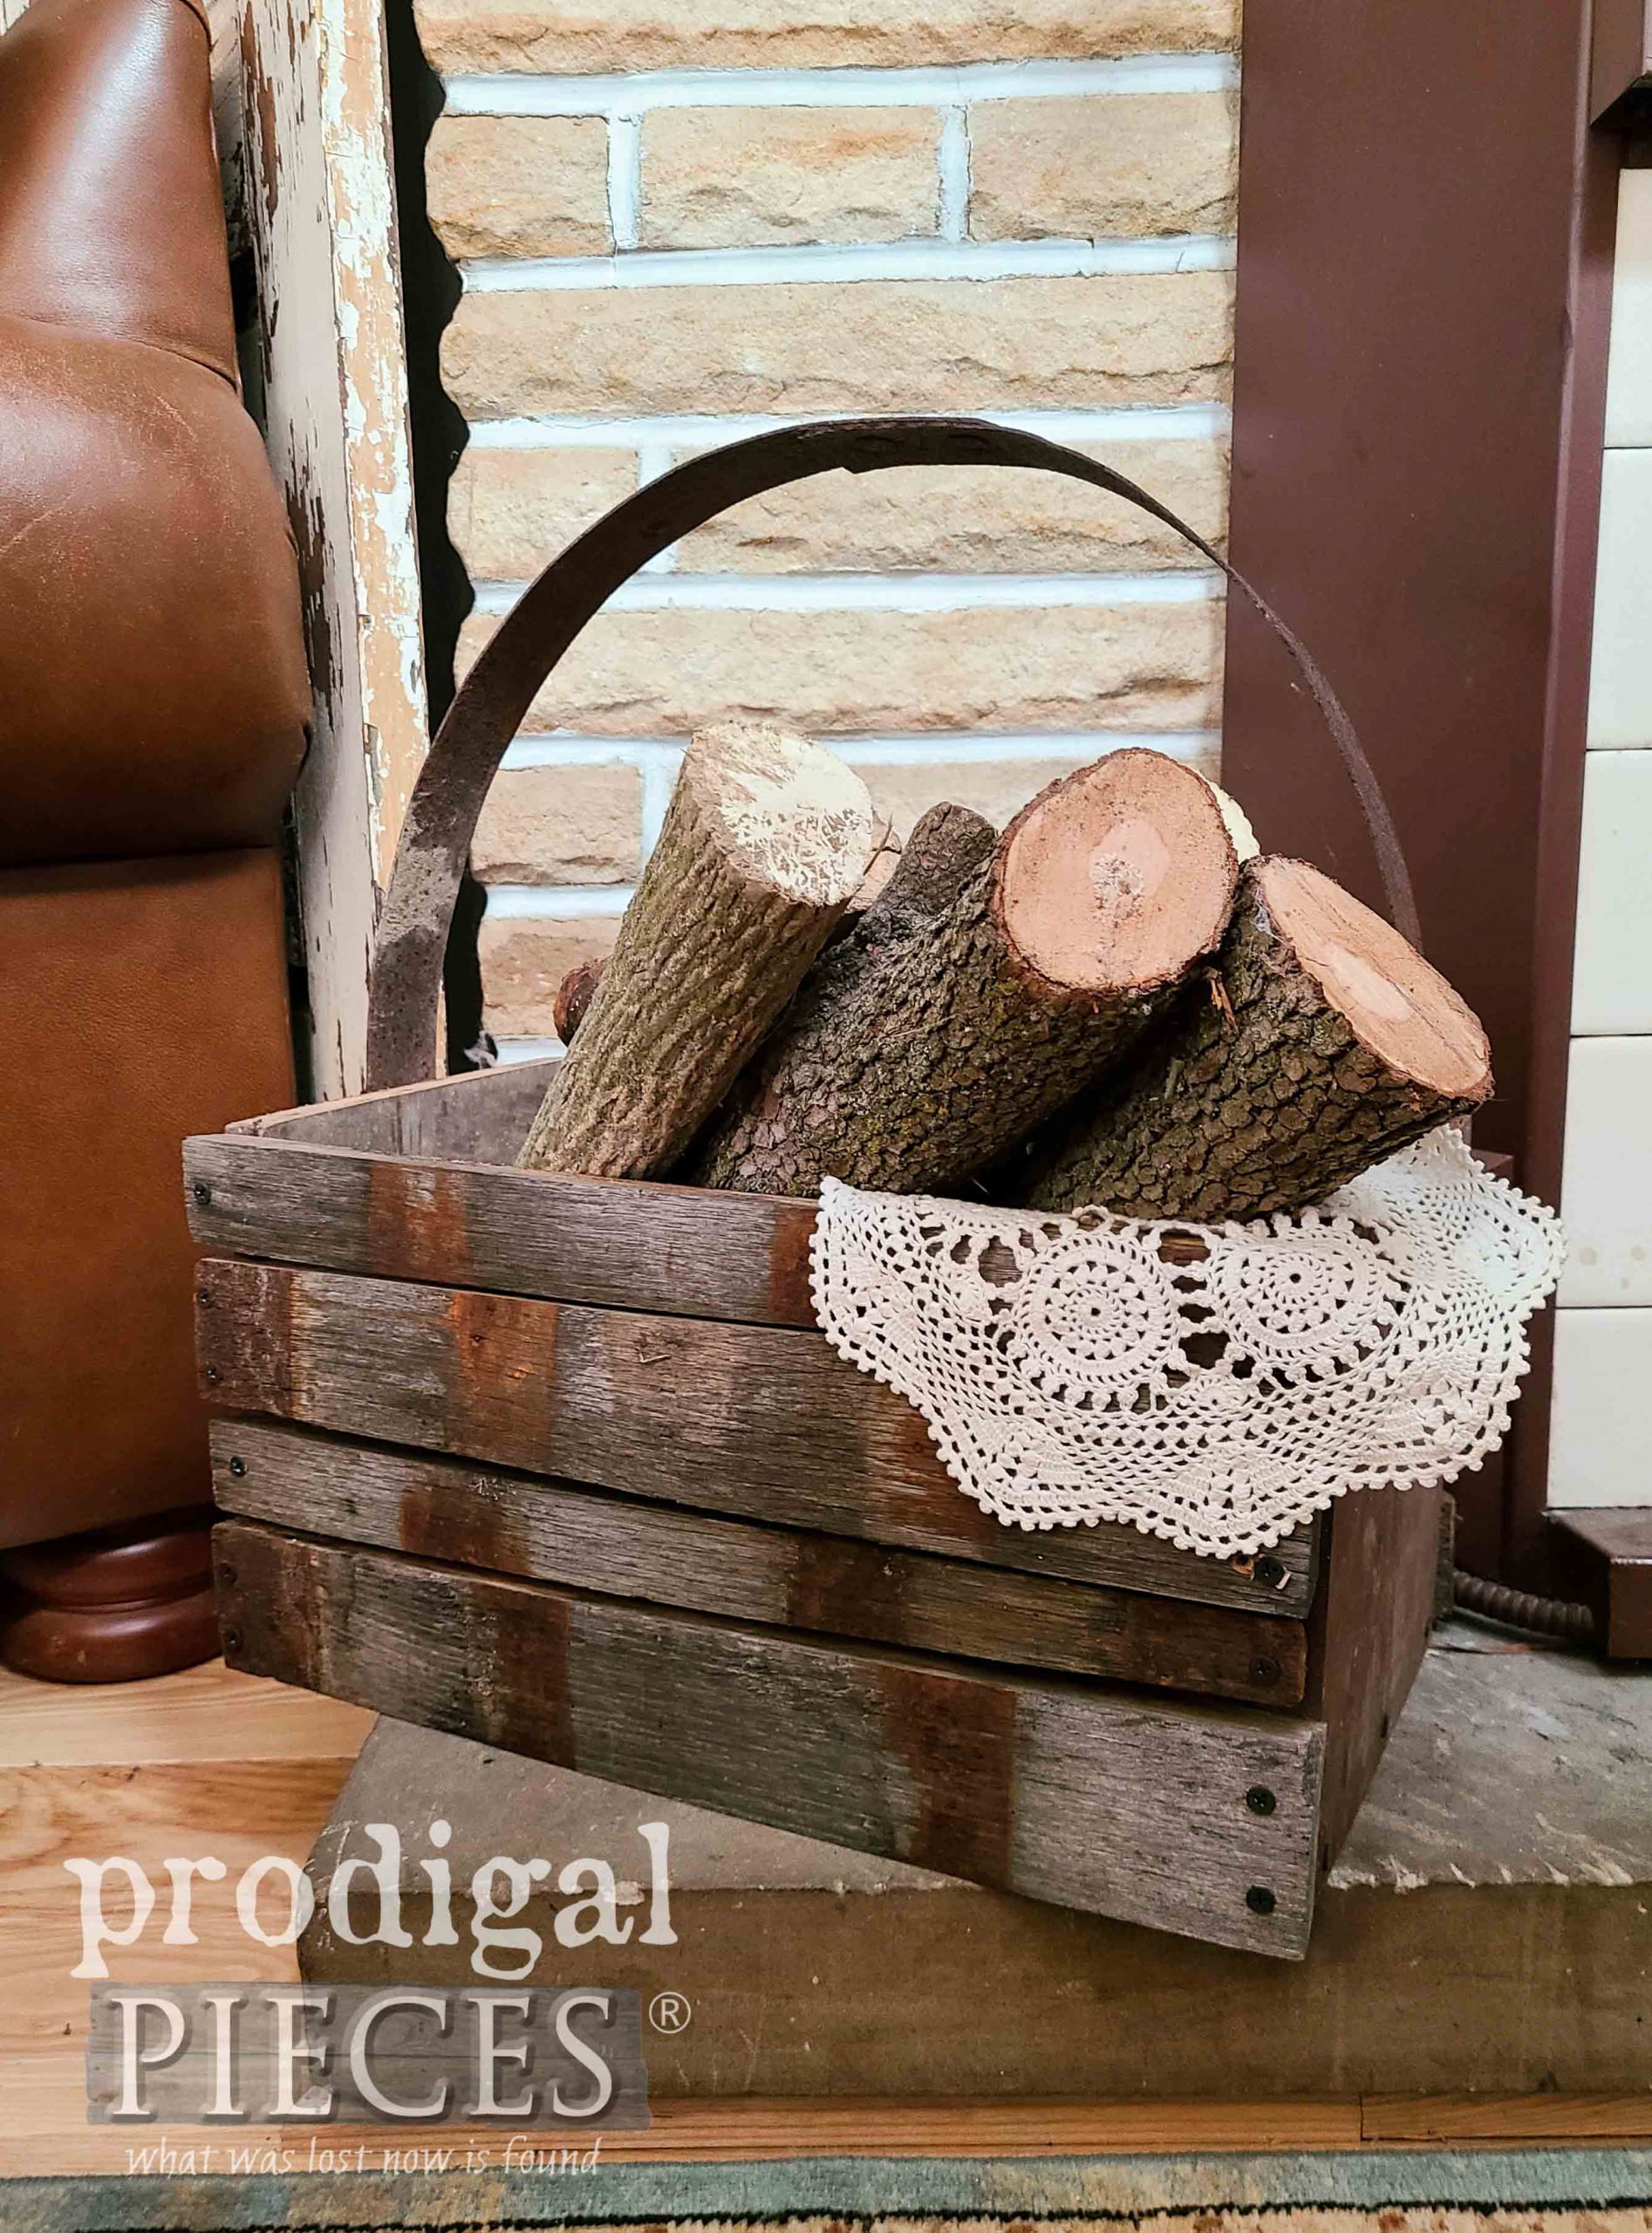 Reclaimed Whiskey Barrel Tote by Larissa of Prodigal Pieces | prodigalpieces.com #prodigalpieces #reclaimed #farmhouse #home #homedecor